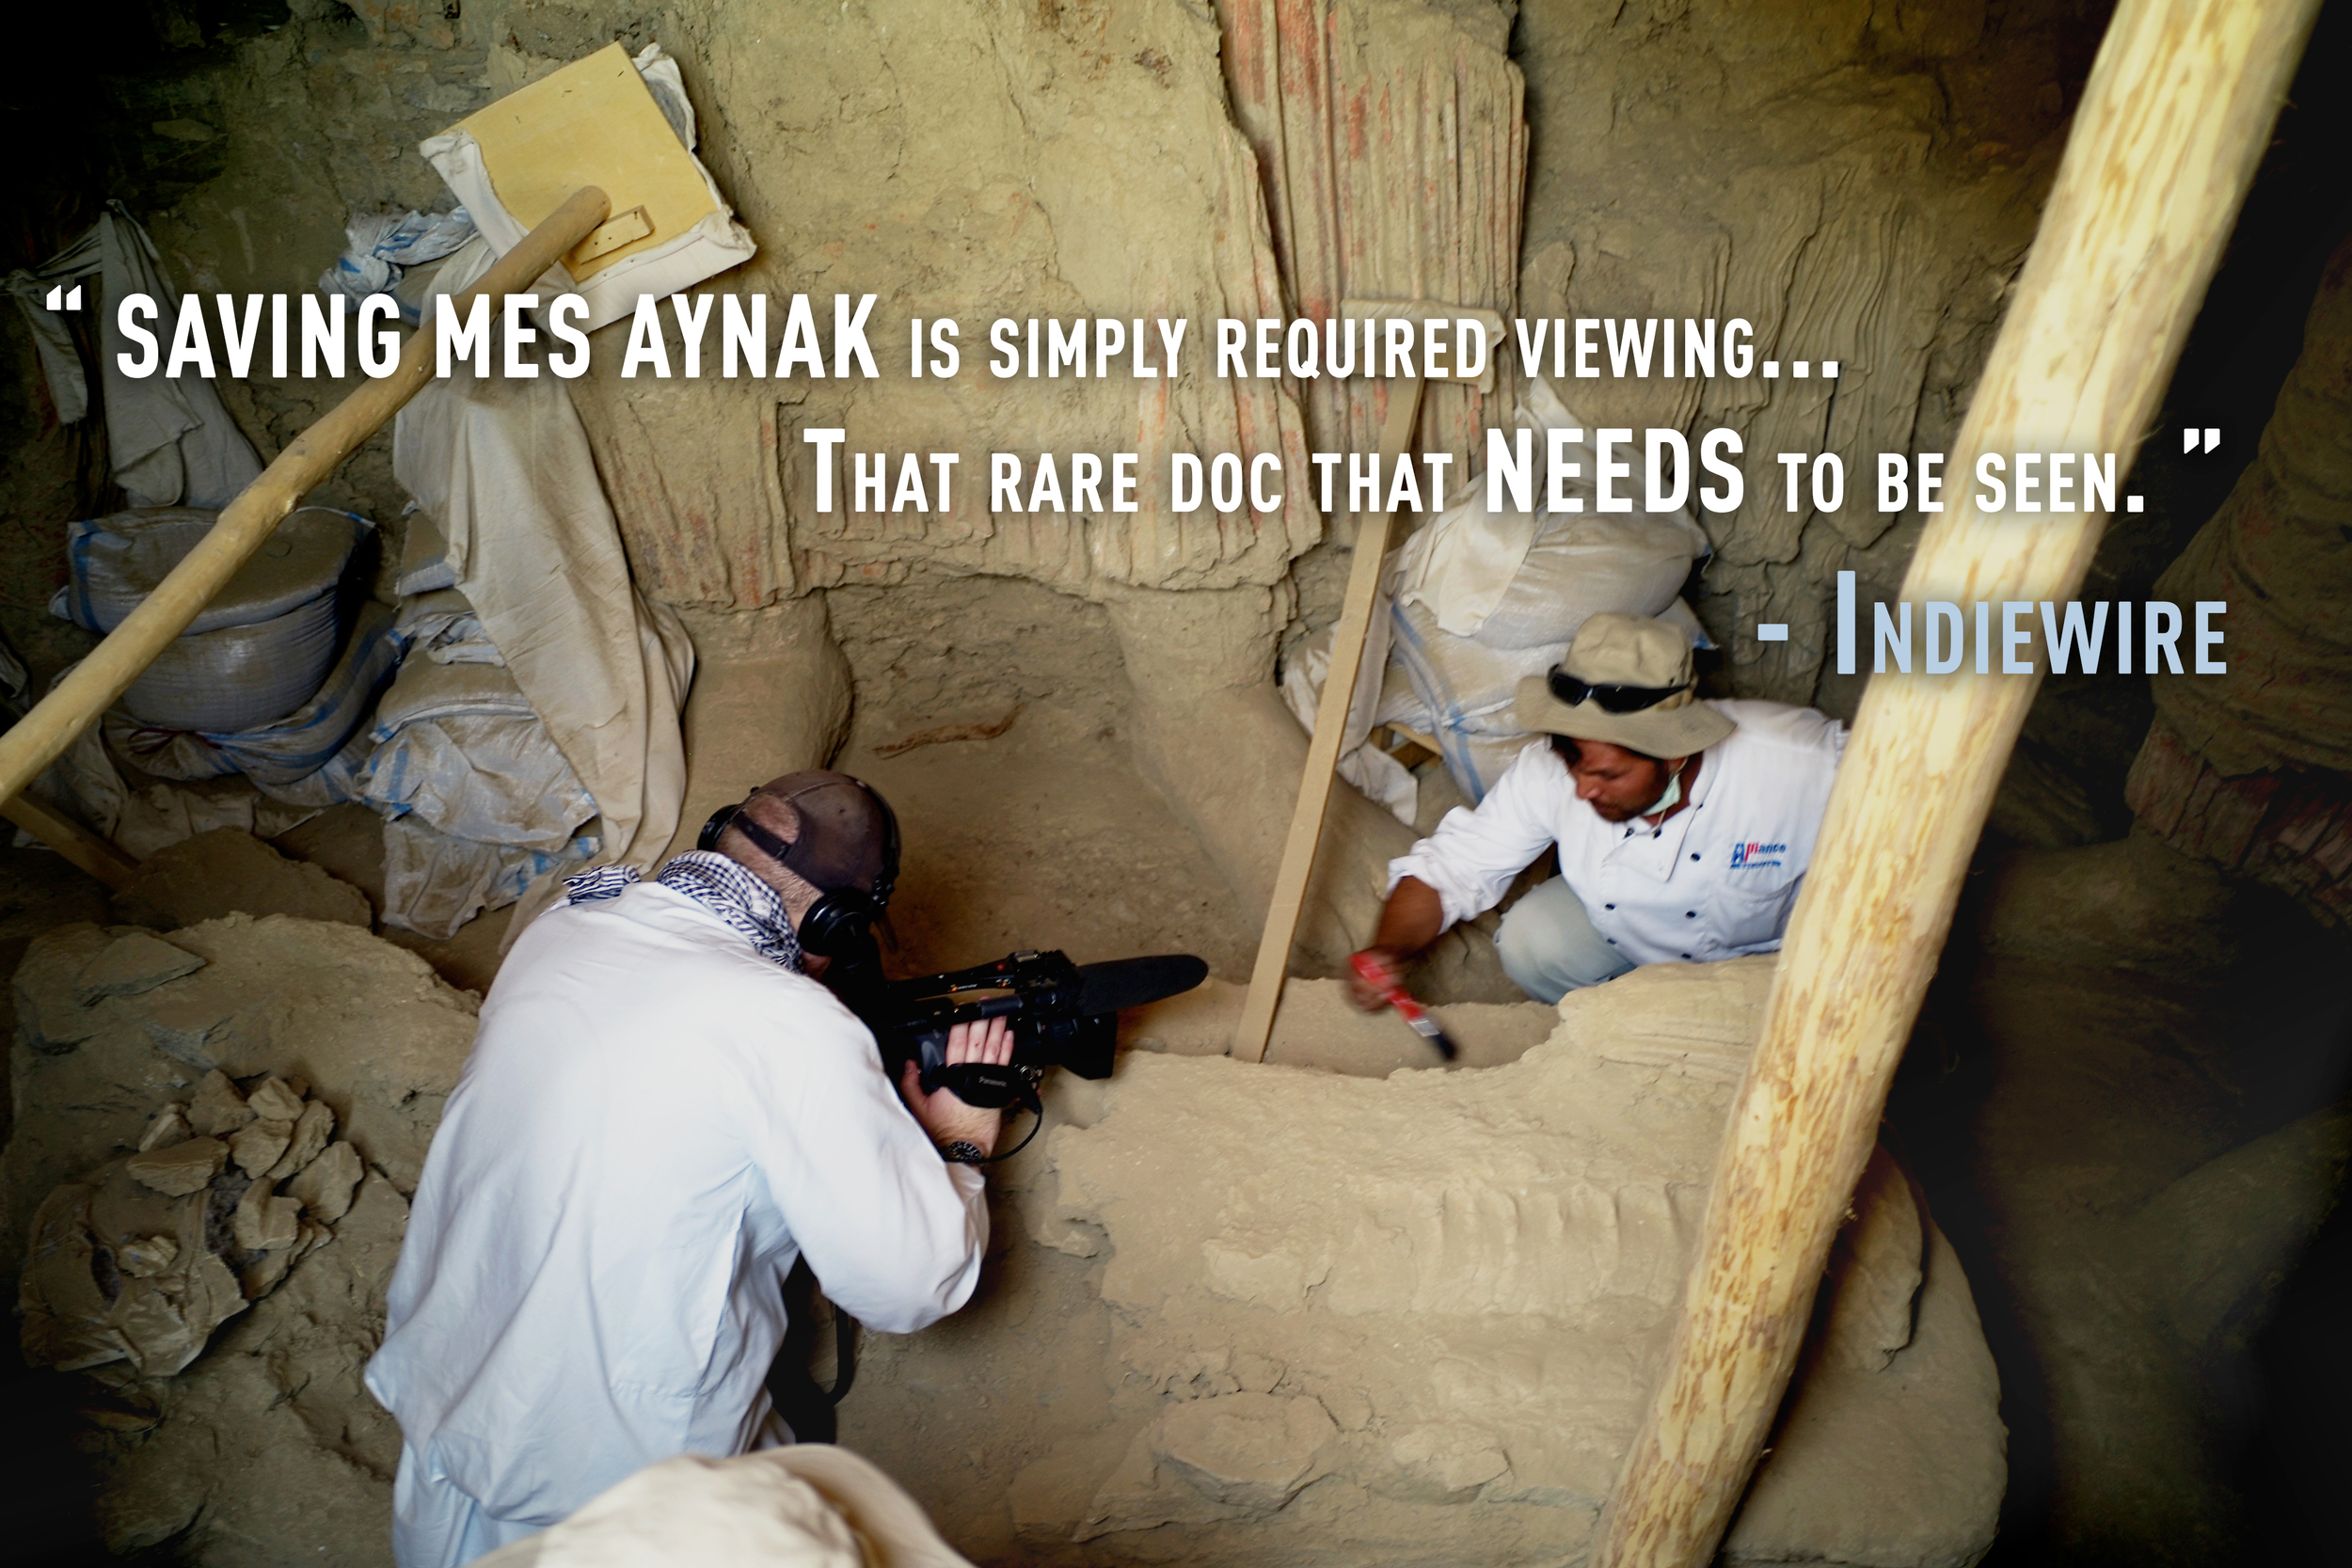 Indiewire-Quote_Mes-Aynak.jpg